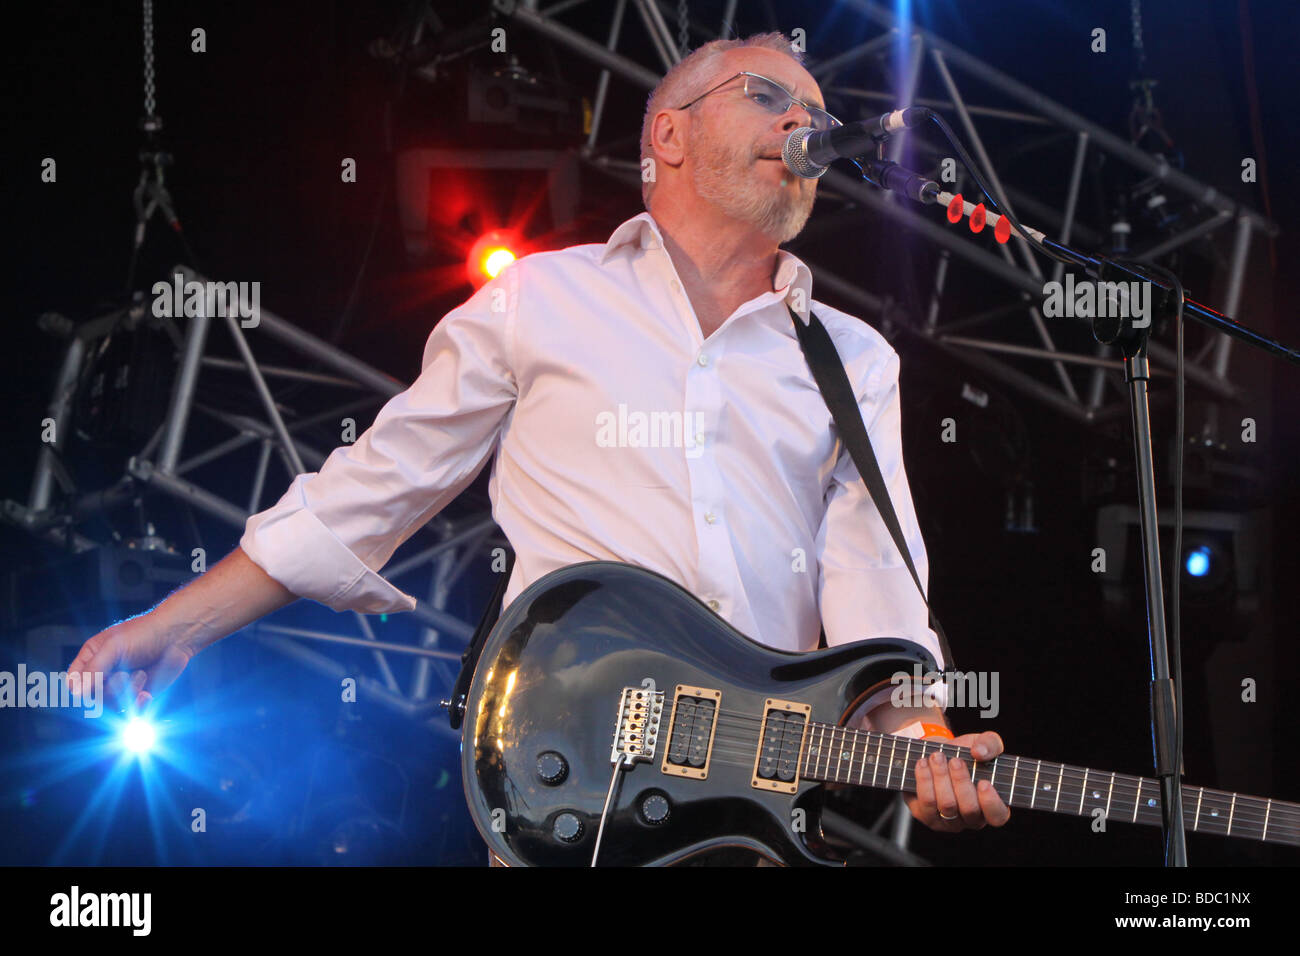 Nik Kershaw at Fairport Conventions Cropredy Festival 15th August 2009 - Stock Image